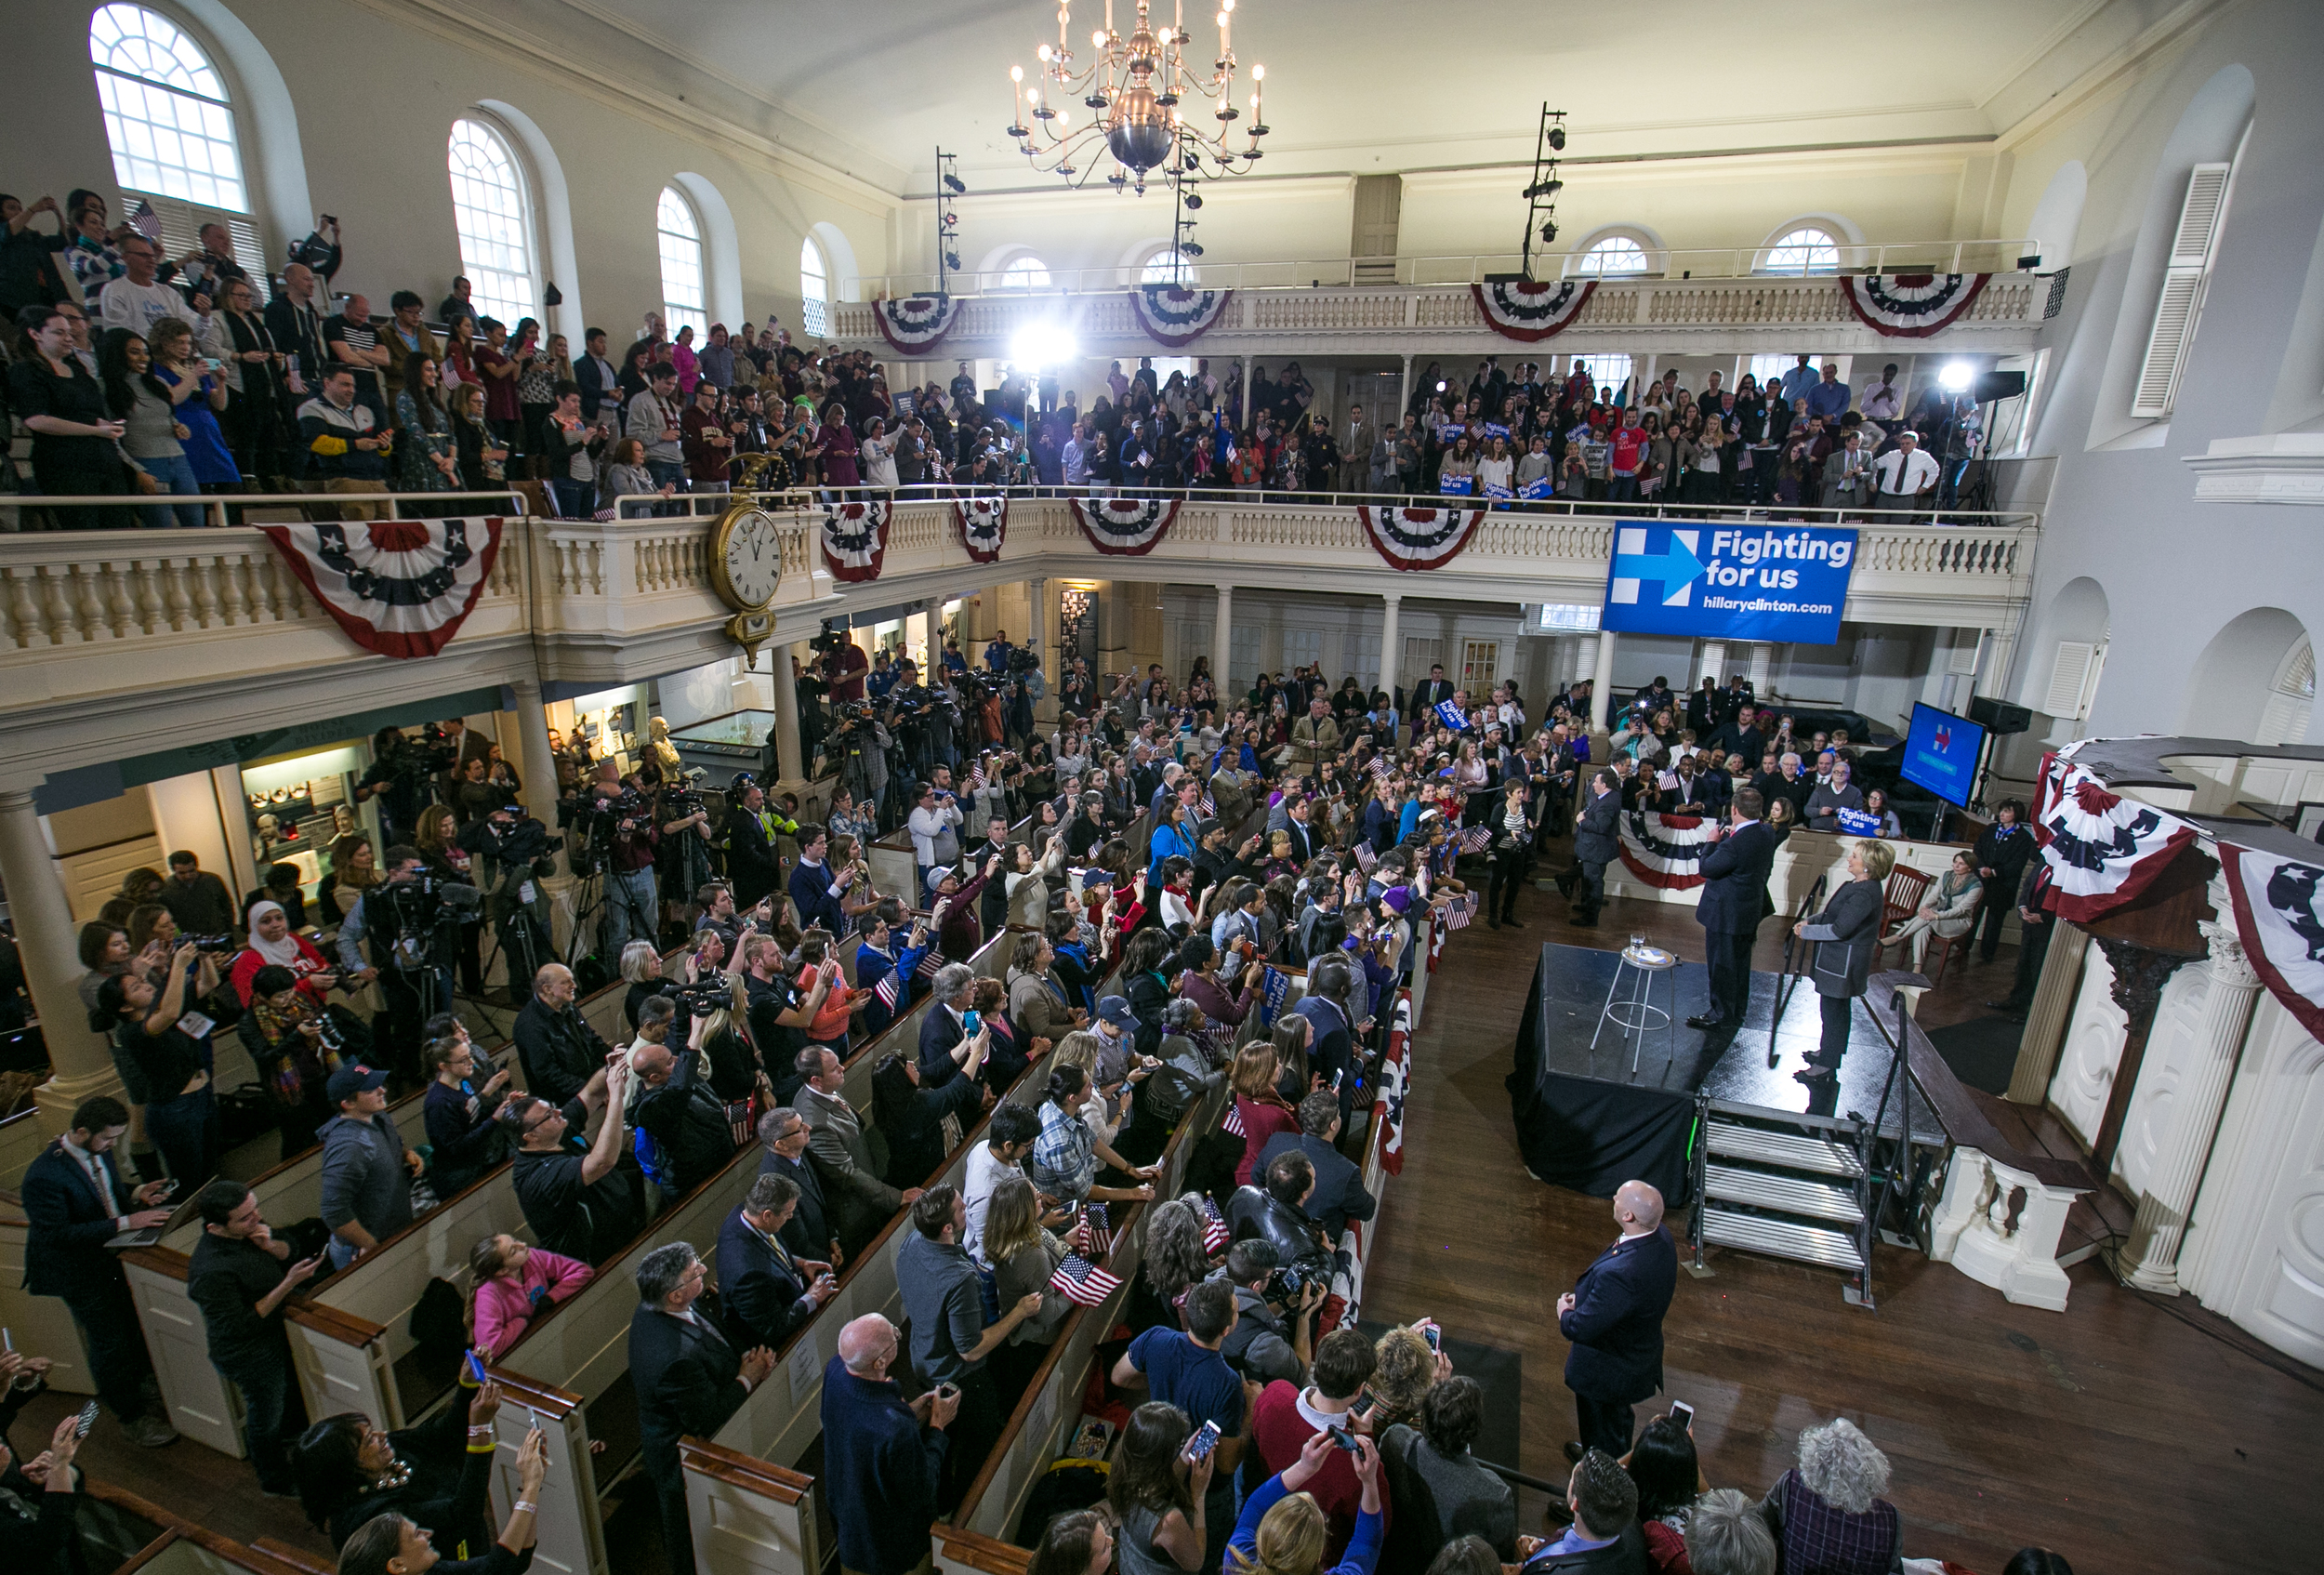 "February 29, 2016 - Voters filling the historic seats of the Old South Meeting House cheer during former Secretary of State Hillary Clinton's rally on the final morning before Super Tuesday. During the address, Hillary spent little time talking about her opponent (Senator Bernie Sanders D-Vt.), and instead focused on issues like college tuition. ""I do not want to ask you to pay taxes to send Donald Trump's youngest son to college,"" Clinton said as the crowd roared in approval.  ©Mike Schwarz"